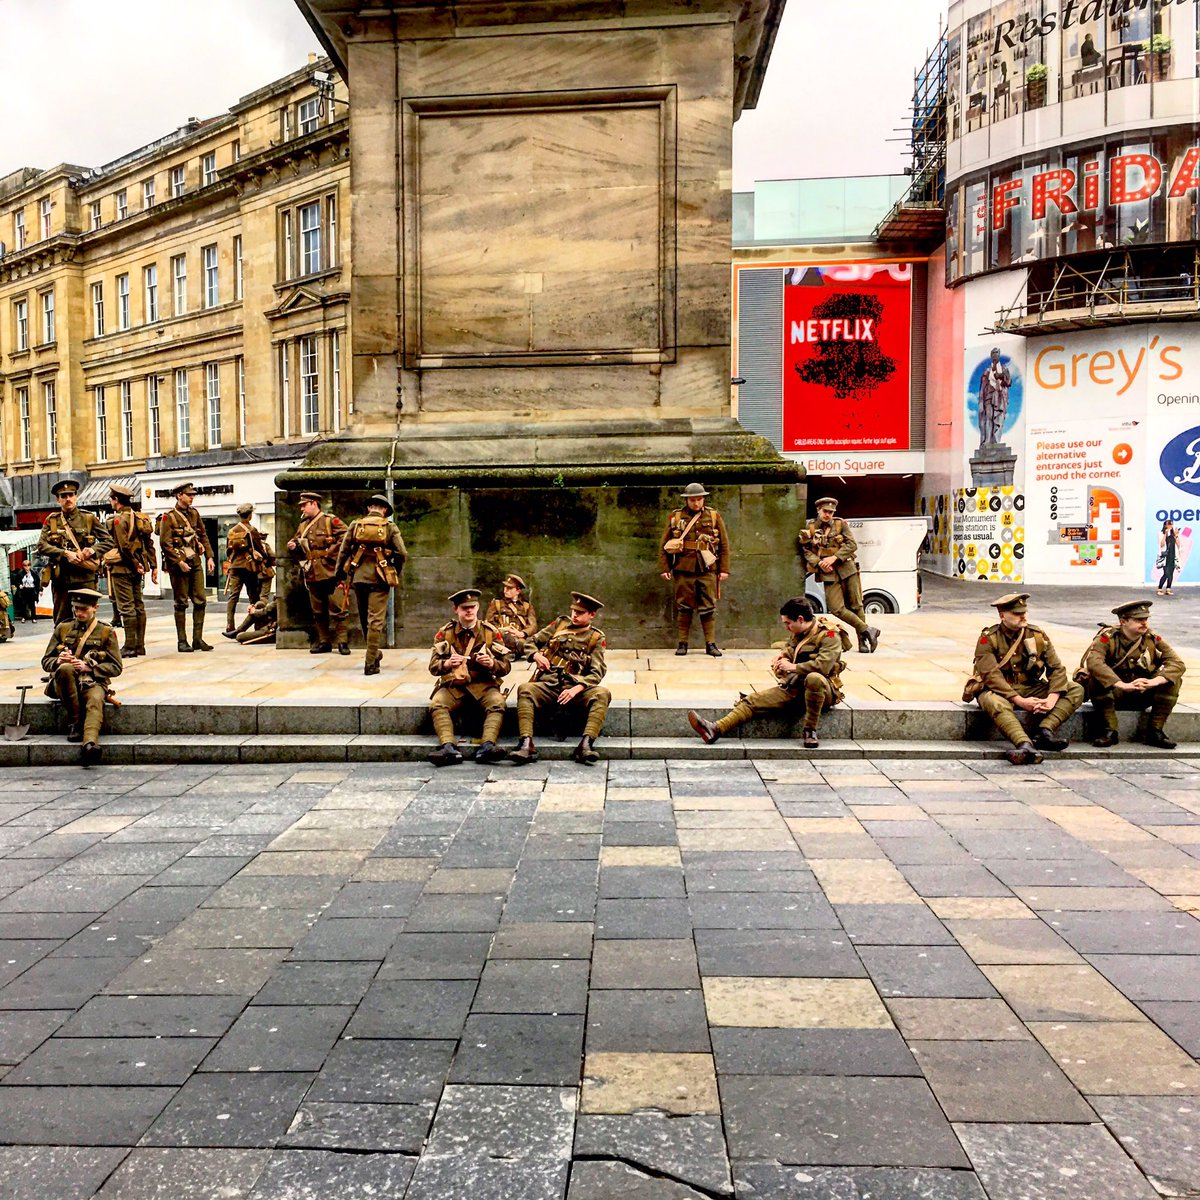 Incredible scenes at Monument this morning, right now this is happening  #wearehere #newcastle #nefollowers https://t.co/0TGfbVHgrz